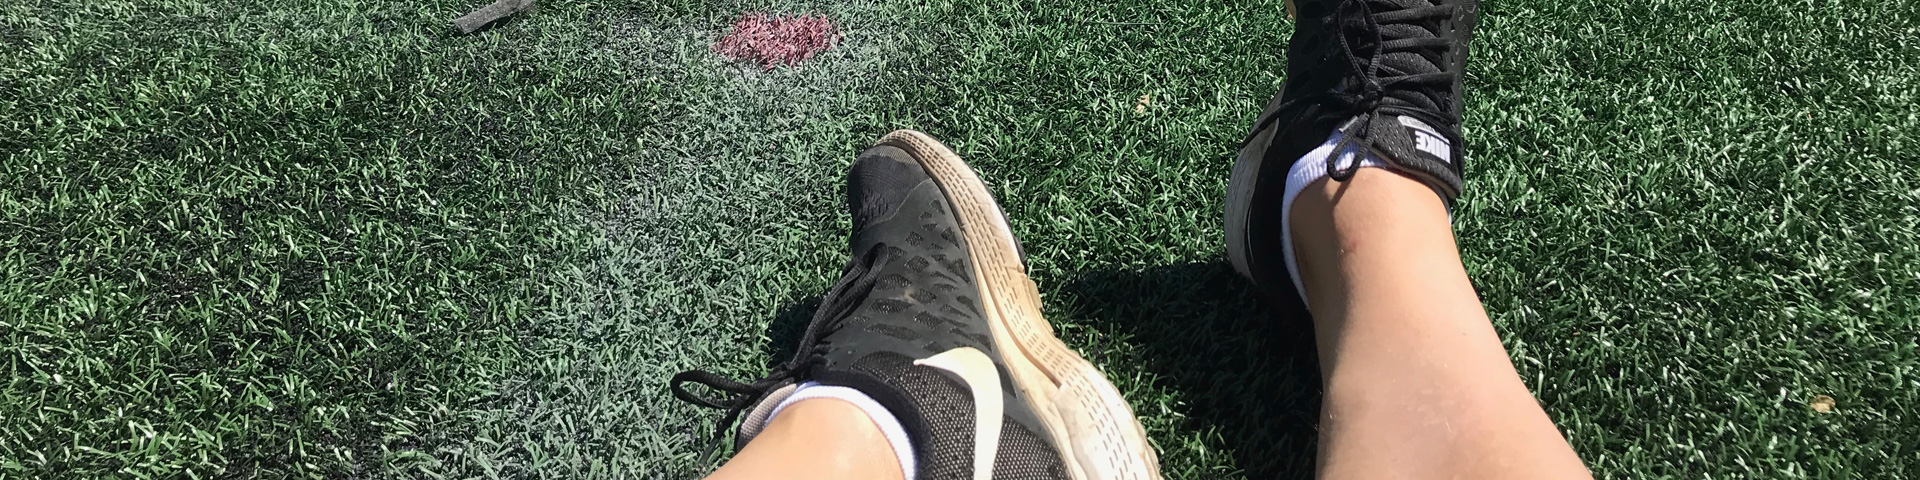 My be-sneakered feet resting on a field.